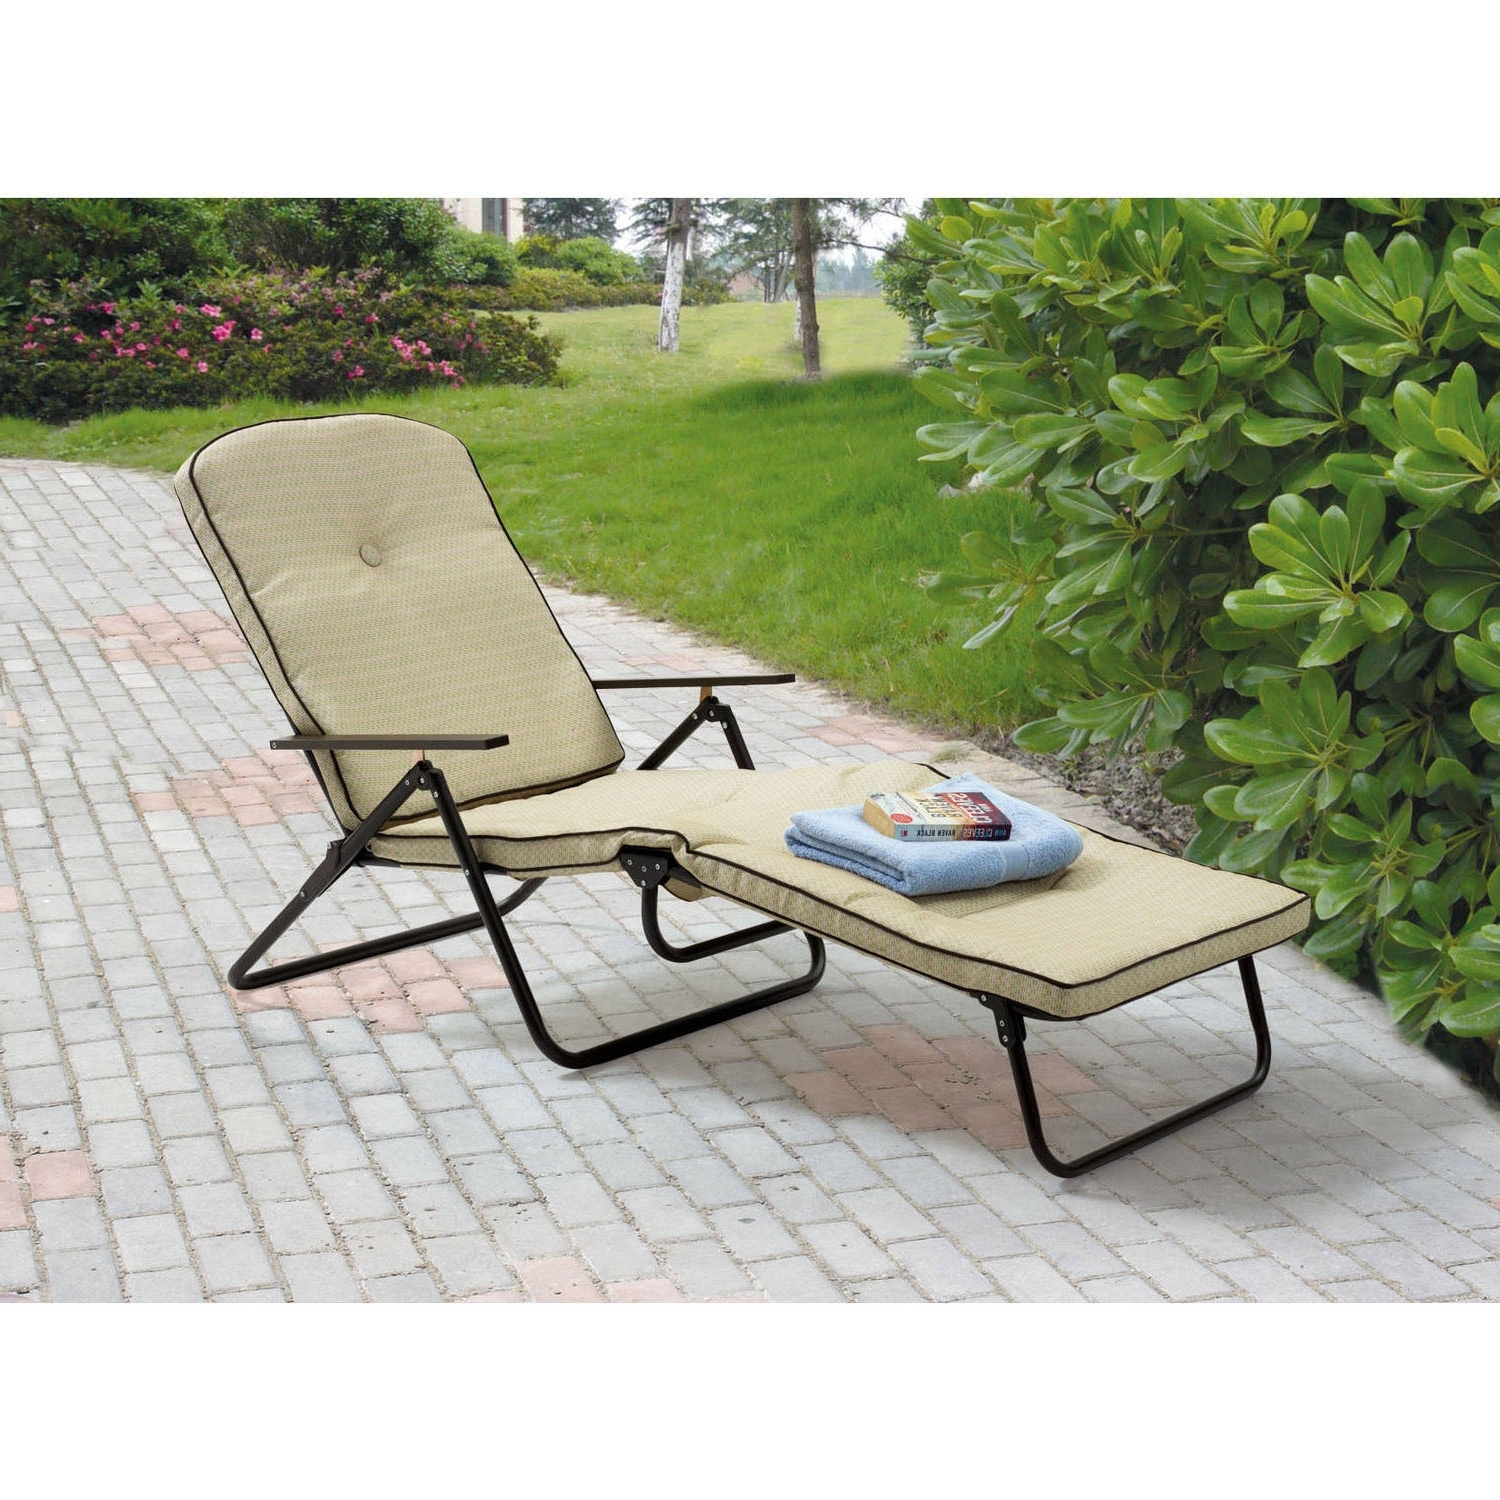 Most Current Foldable Chaise Lounge Outdoor Chairs Pertaining To Mainstays Sand Dune Outdoor Padded Folding Chaise Lounge, Tan (View 4 of 15)